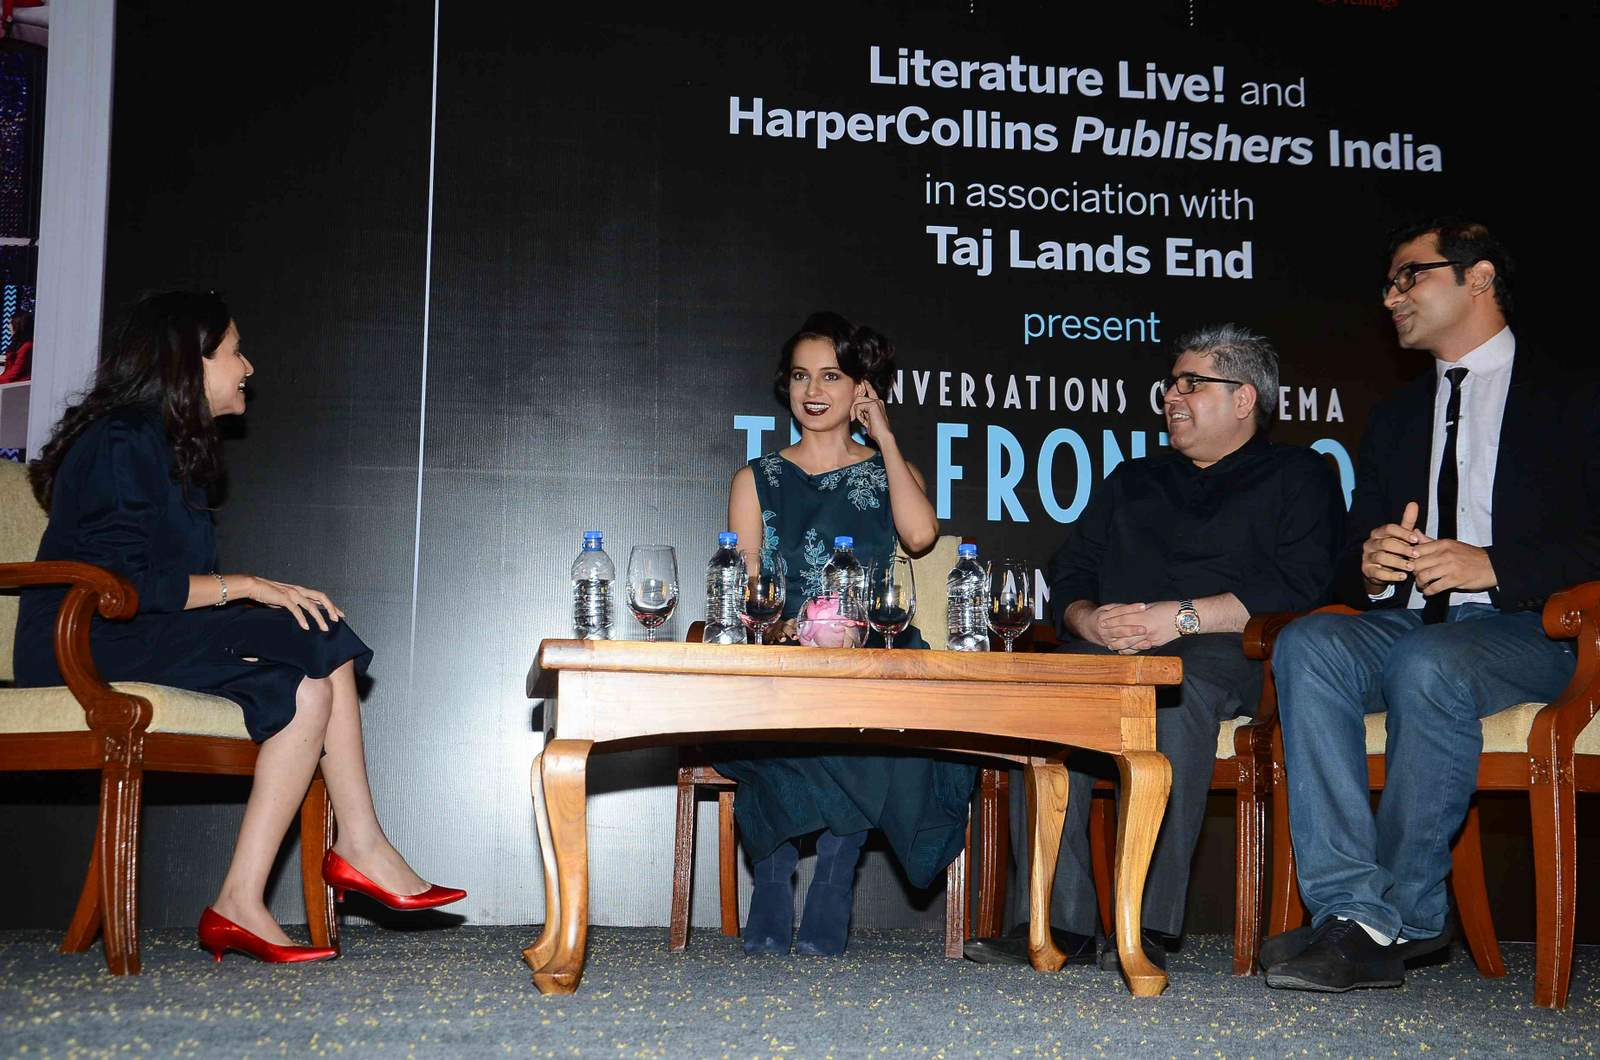 Kangana Ranaut launches Anupama Chopra's book The Front Row